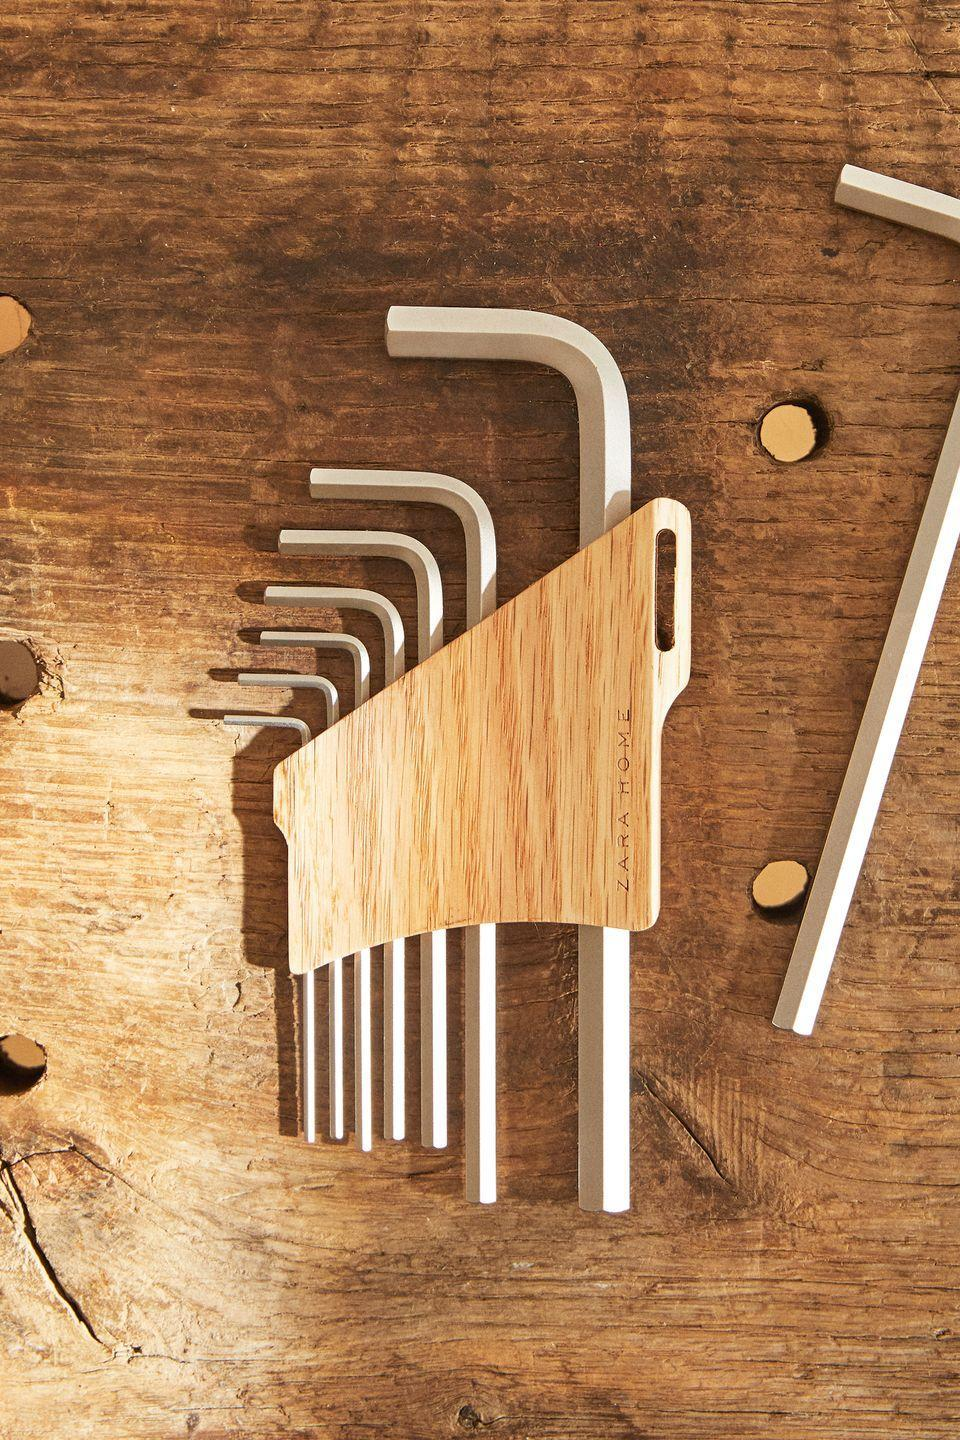 <p>This set of allen keys, made of carbon steel, is presented in an oak stand with a small handle detail for hanging or holding.</p>